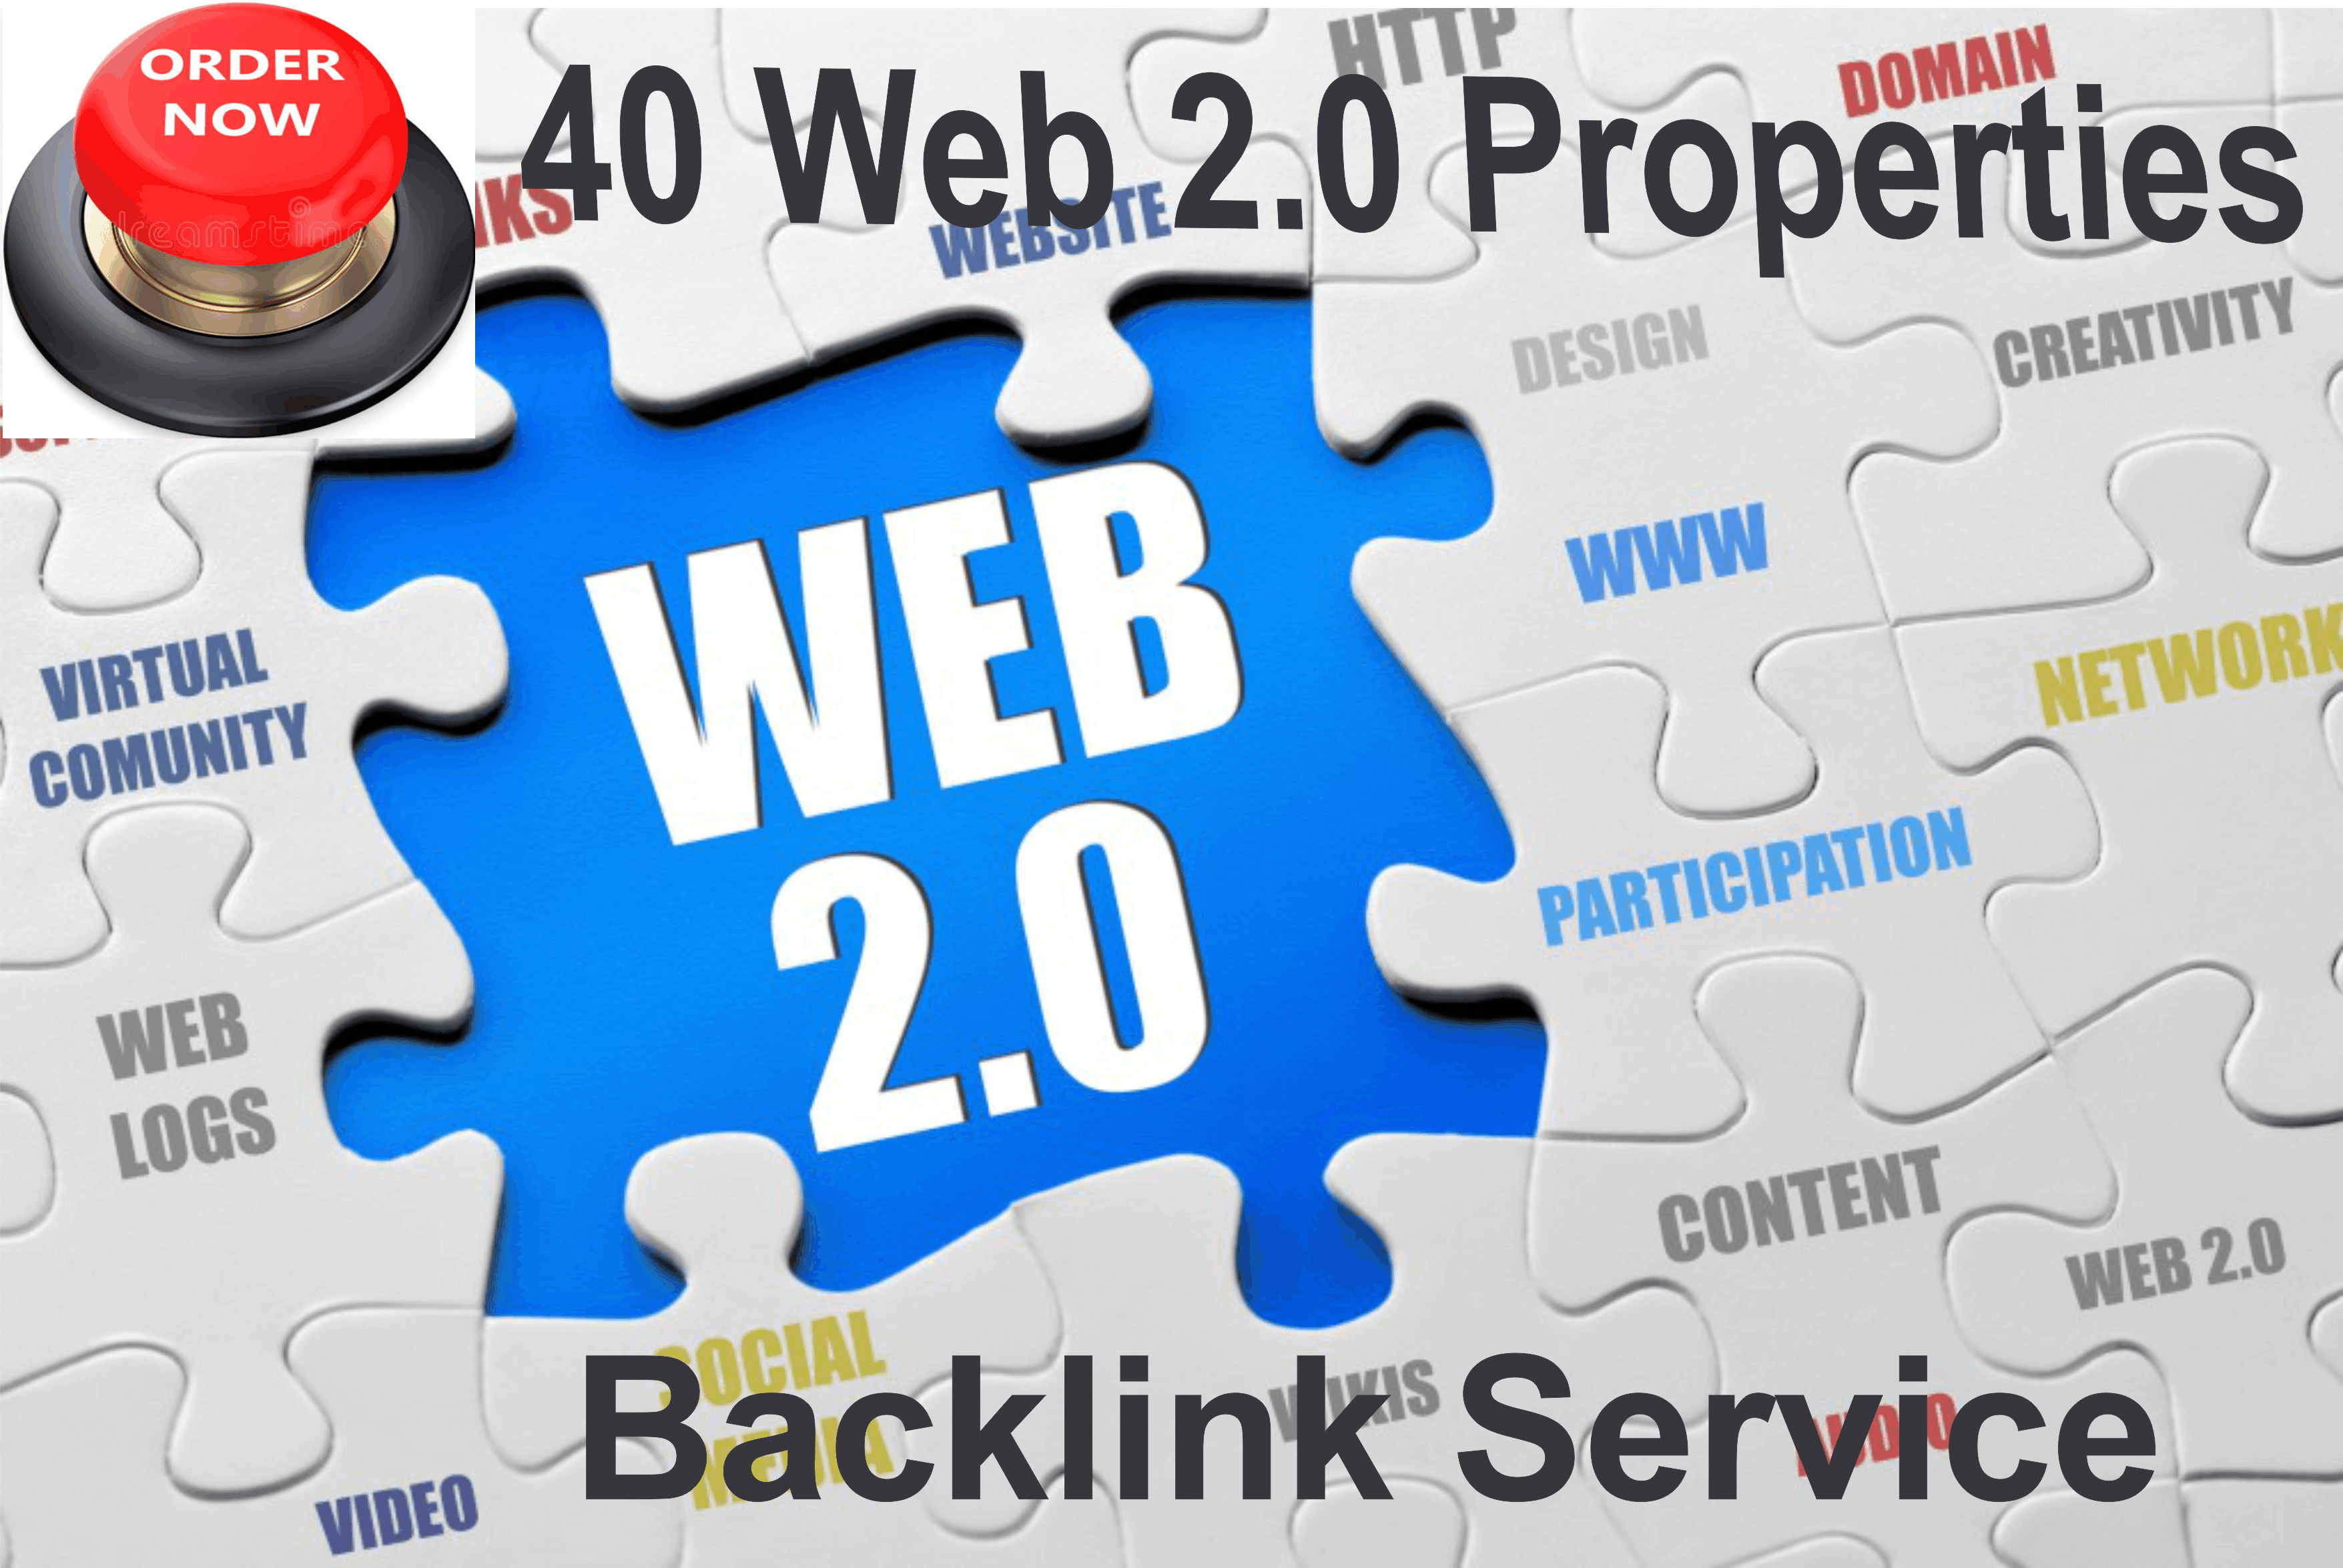 web 2.0 properties backlink service